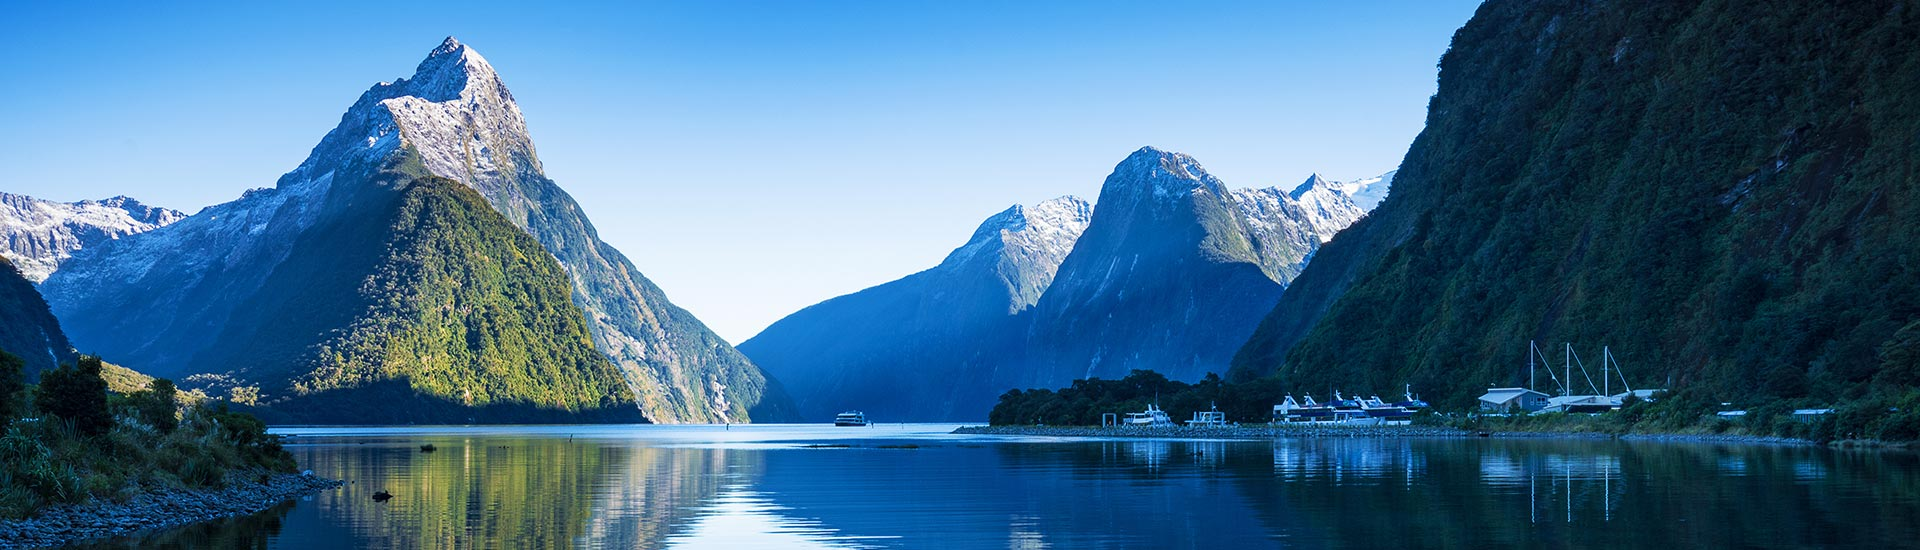 milford sound new zealand hero image